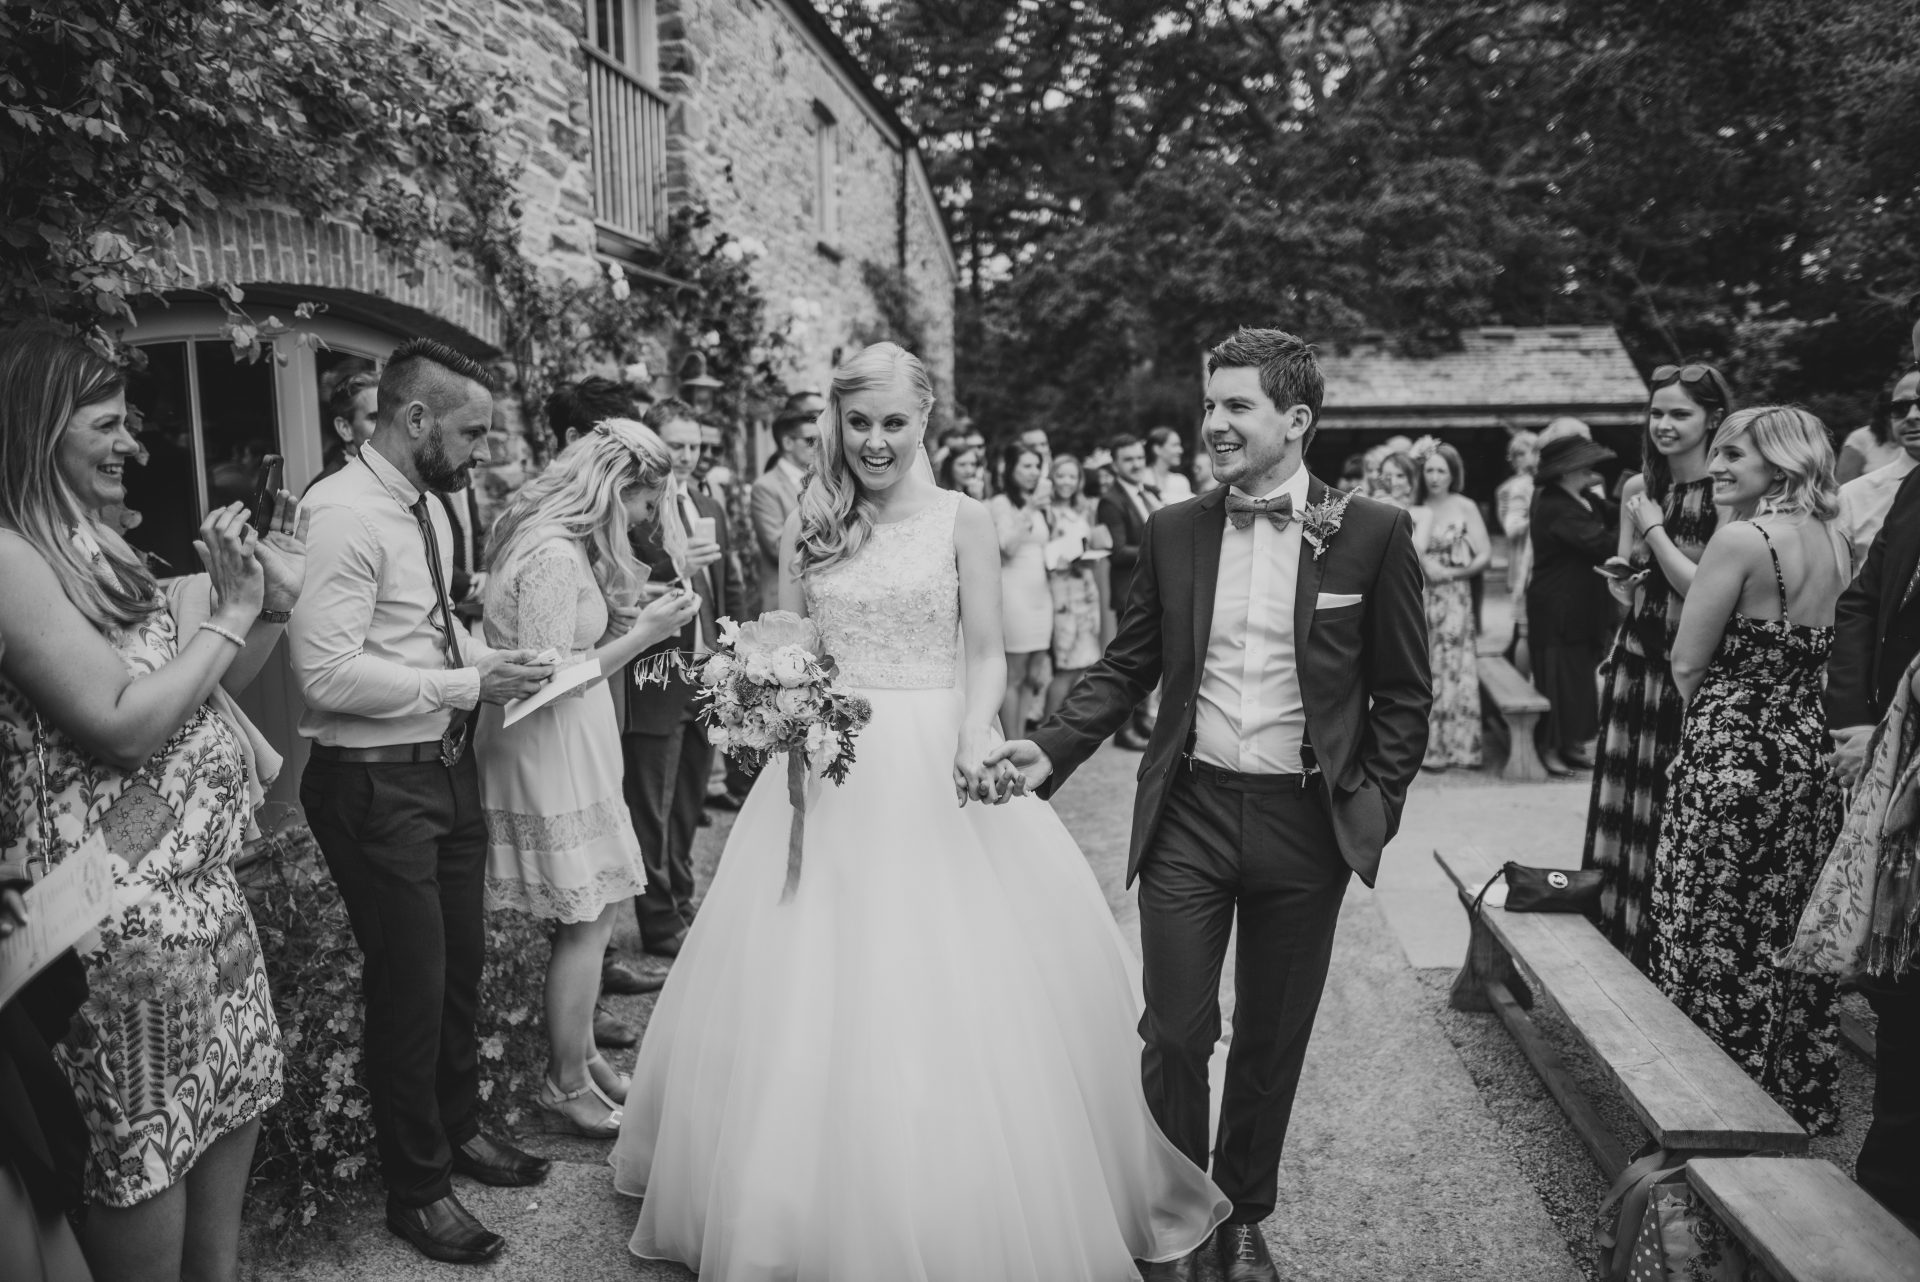 Wedding at Nancarrow Farm - Stewart Girvan Photography